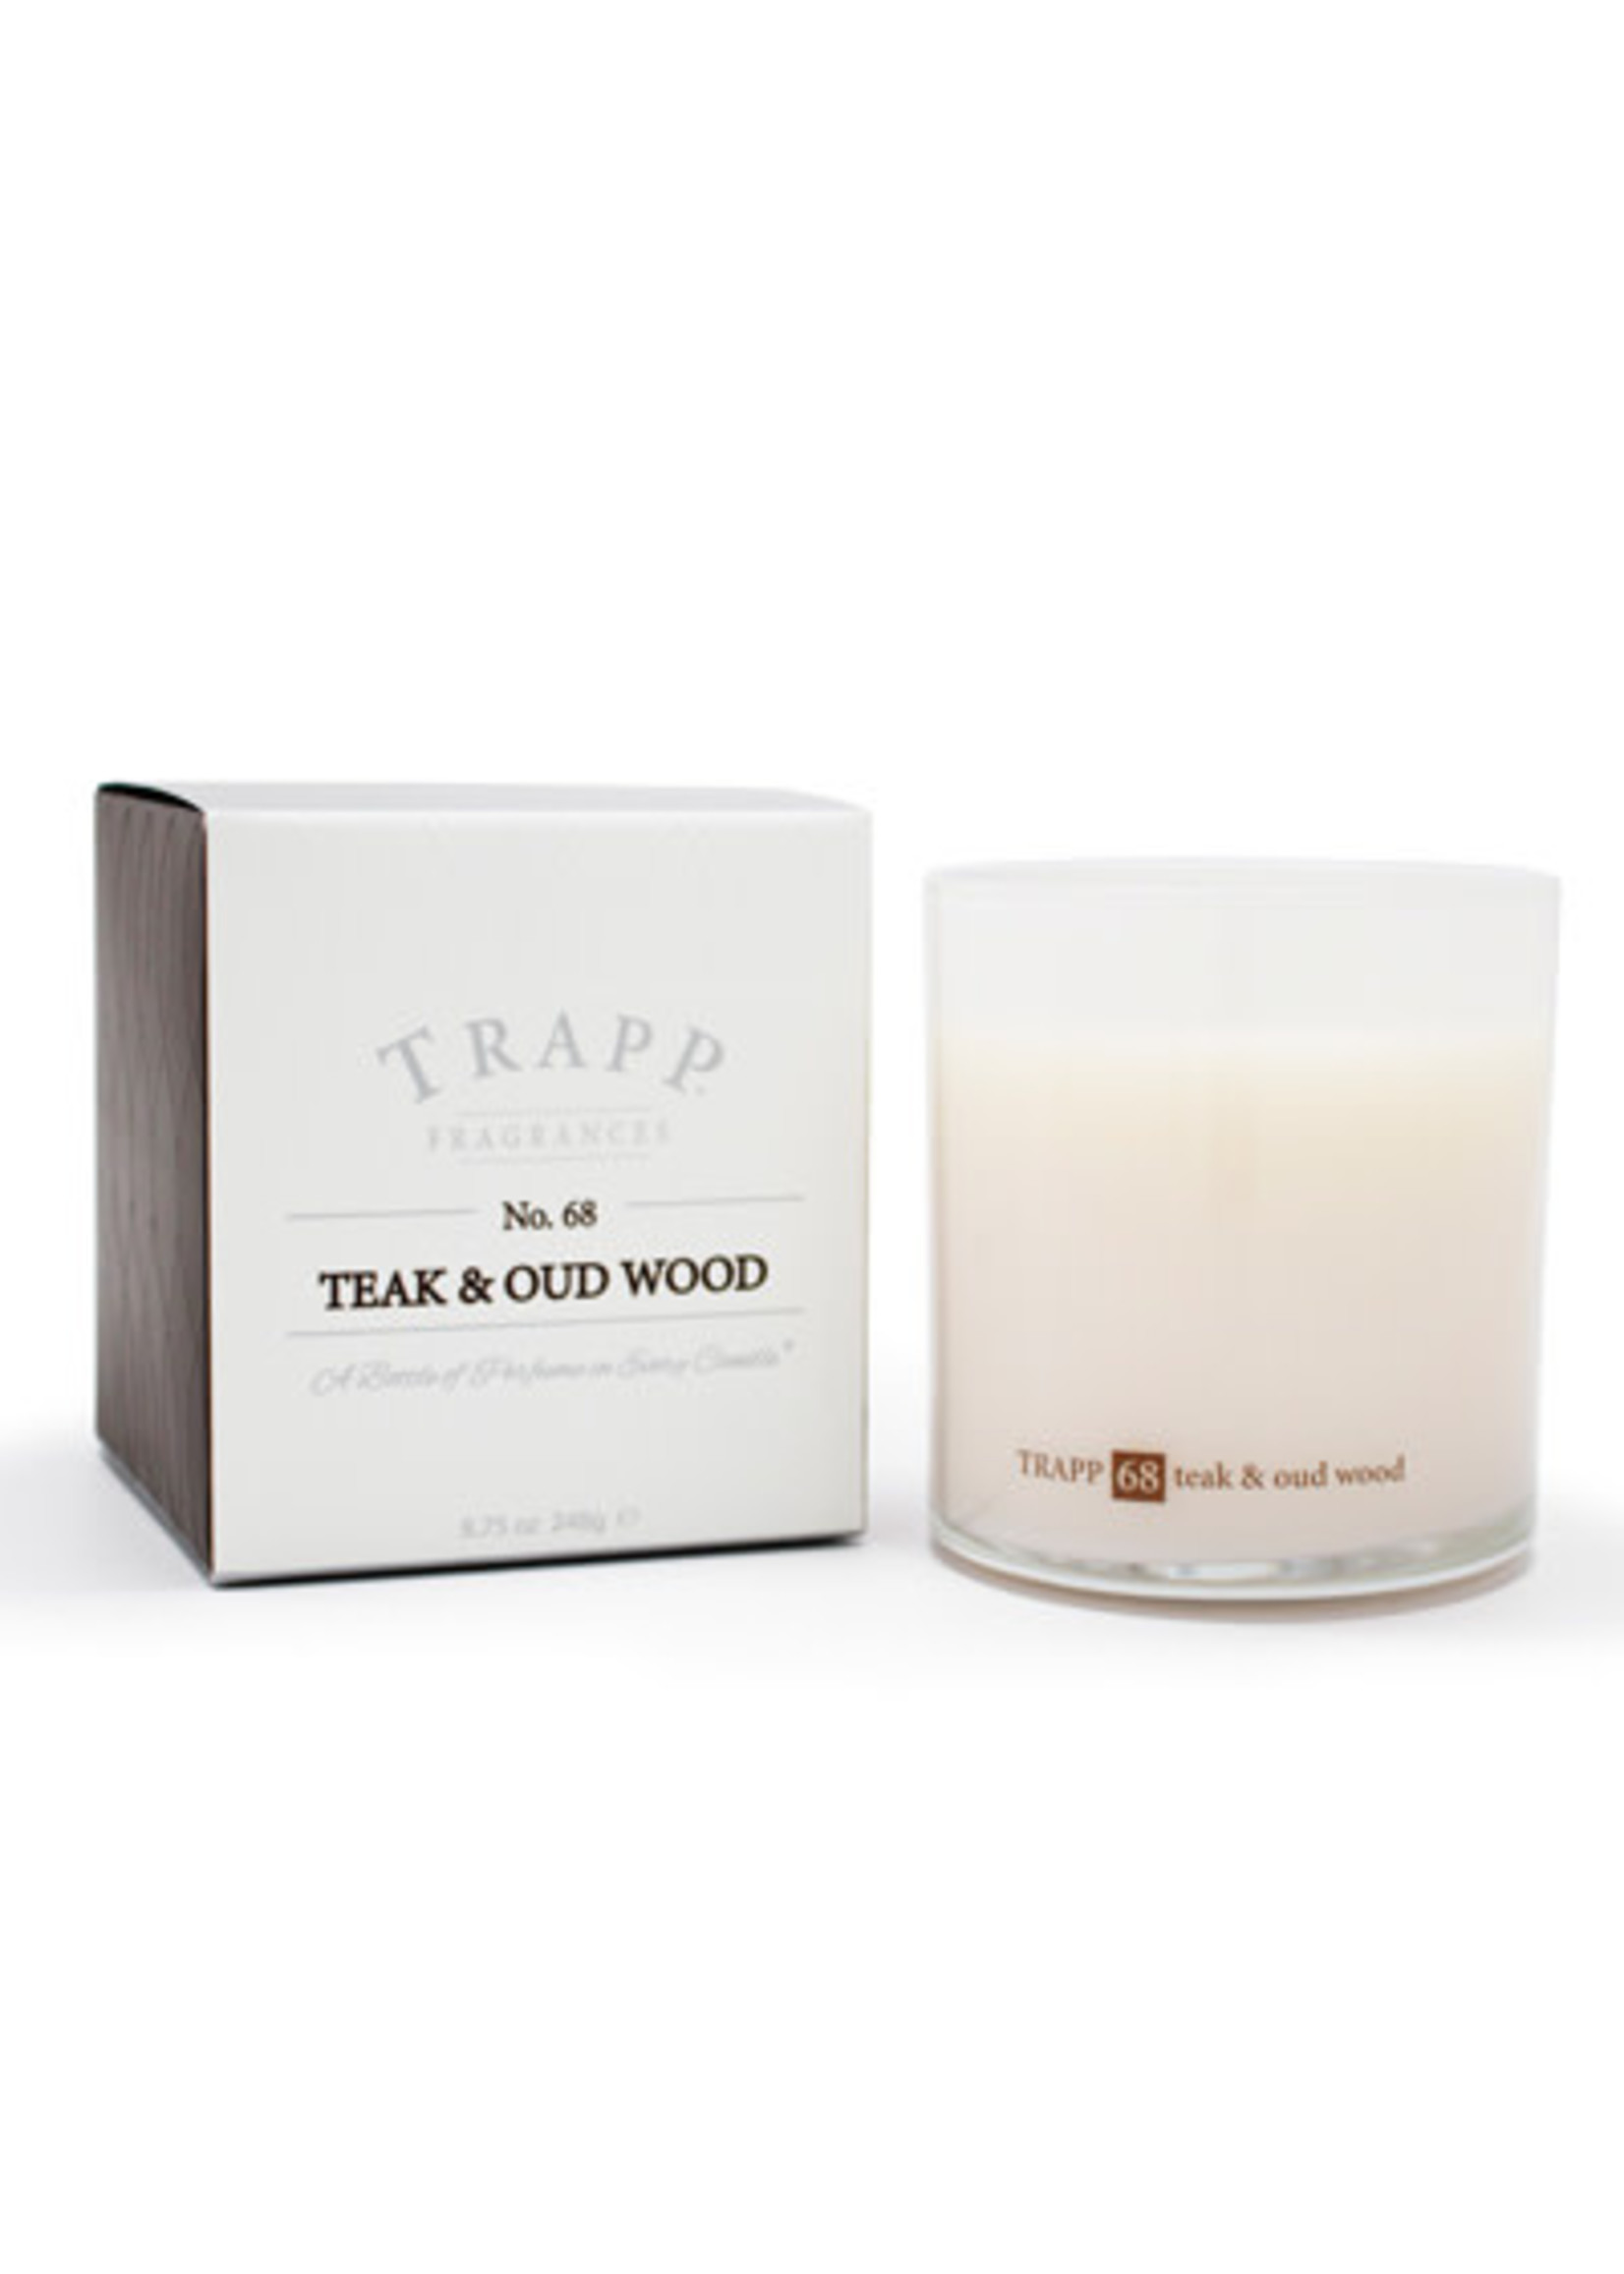 Trapp Candles Ambiance Collection - No. 68 Teak and Oud Wood - 8.75 oz. Poured Candle